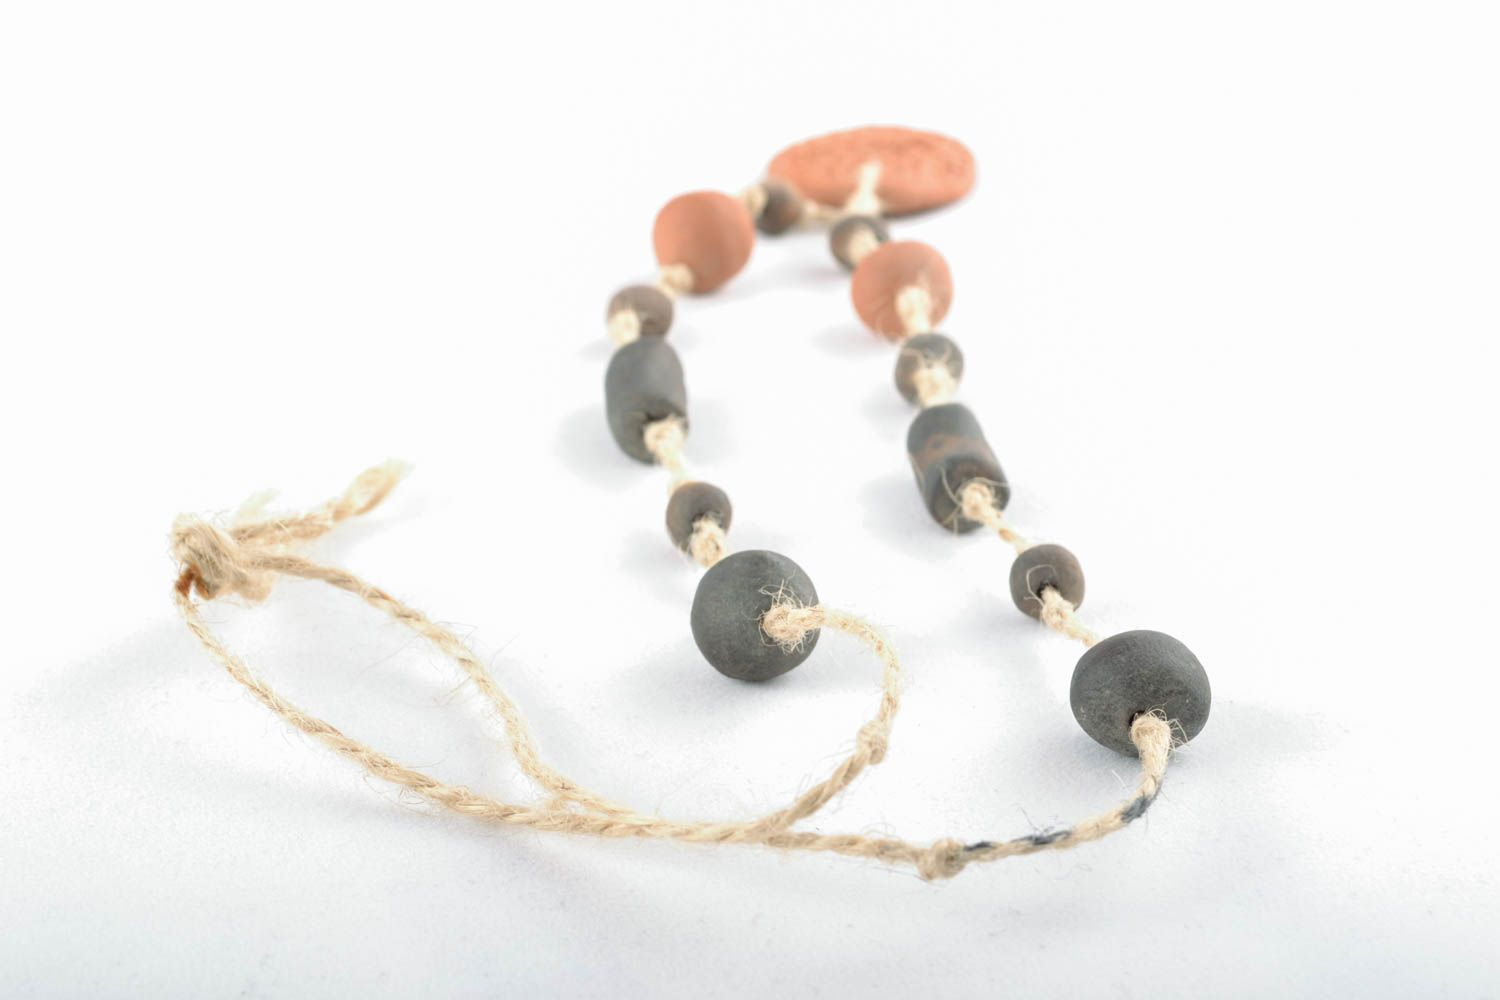 Clay necklace in eco style photo 4